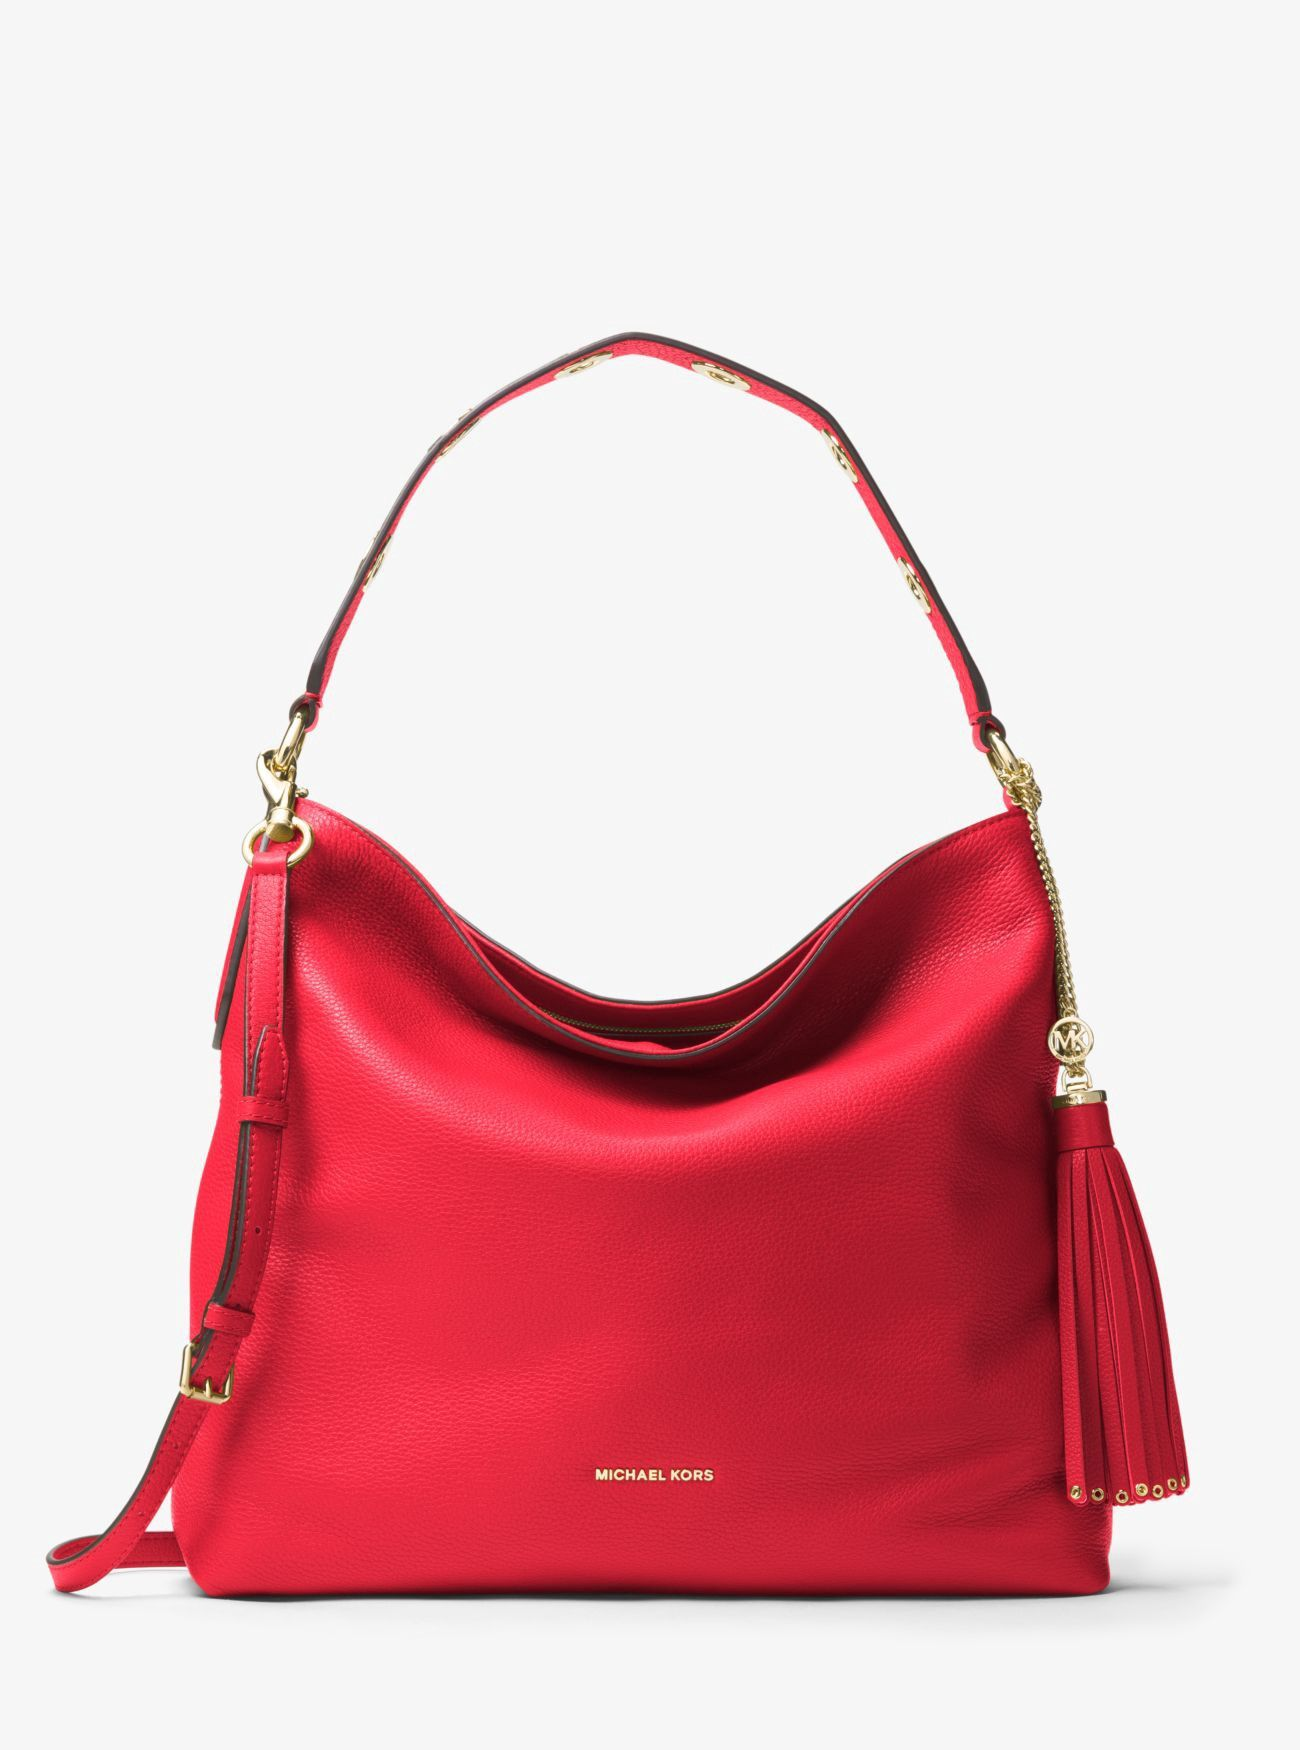 3ee170550f2d MICHAEL KORS Brooklyn Large Leather Shoulder Bag.  michaelkors  bags  shoulder  bags  hand bags  polyester  leather  lining